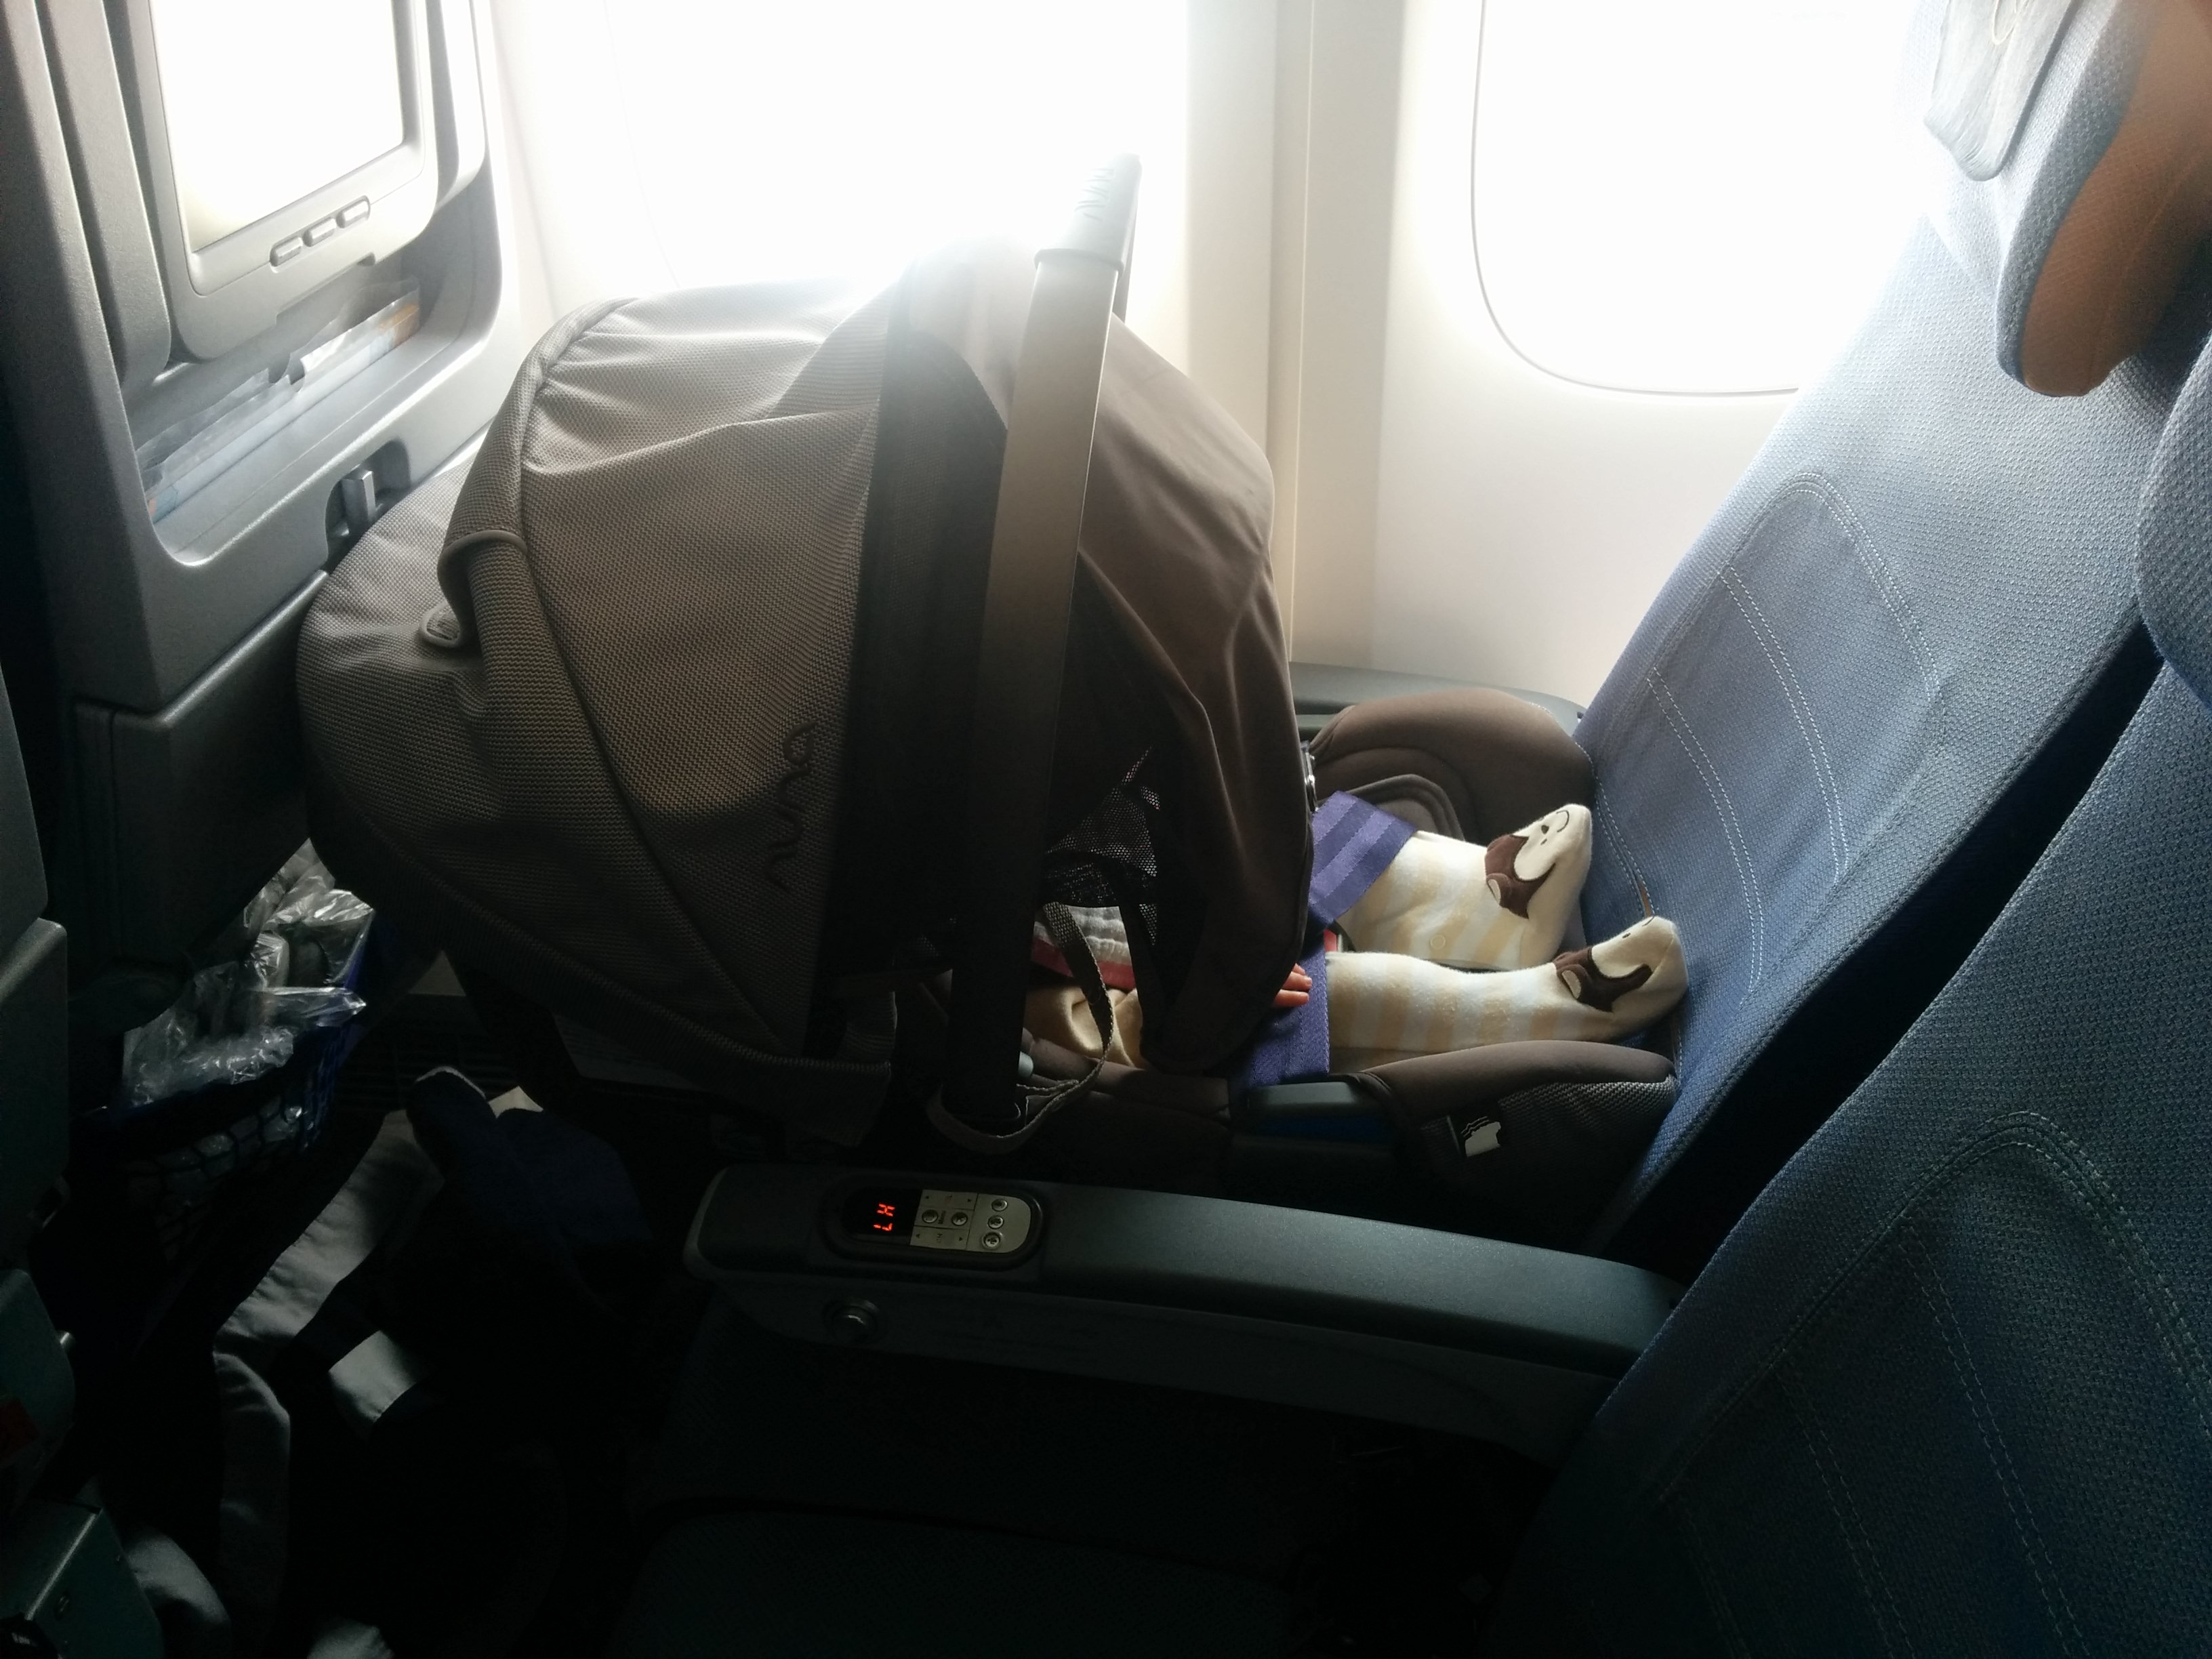 Photo Right Luna Securely Fastened On Lufthansa Flight 422 From FRA To BOS Boeing 747 400 Economy Class